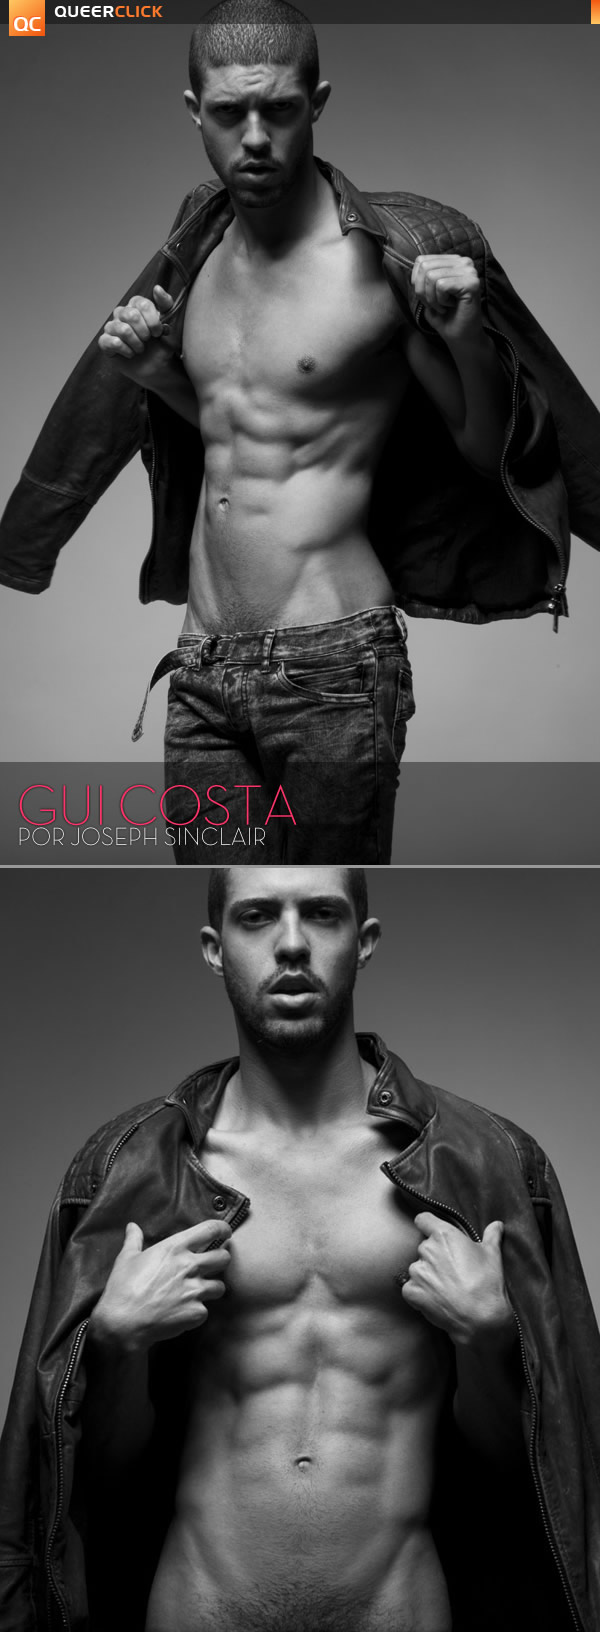 Joseph Sinclair: Gui Costa